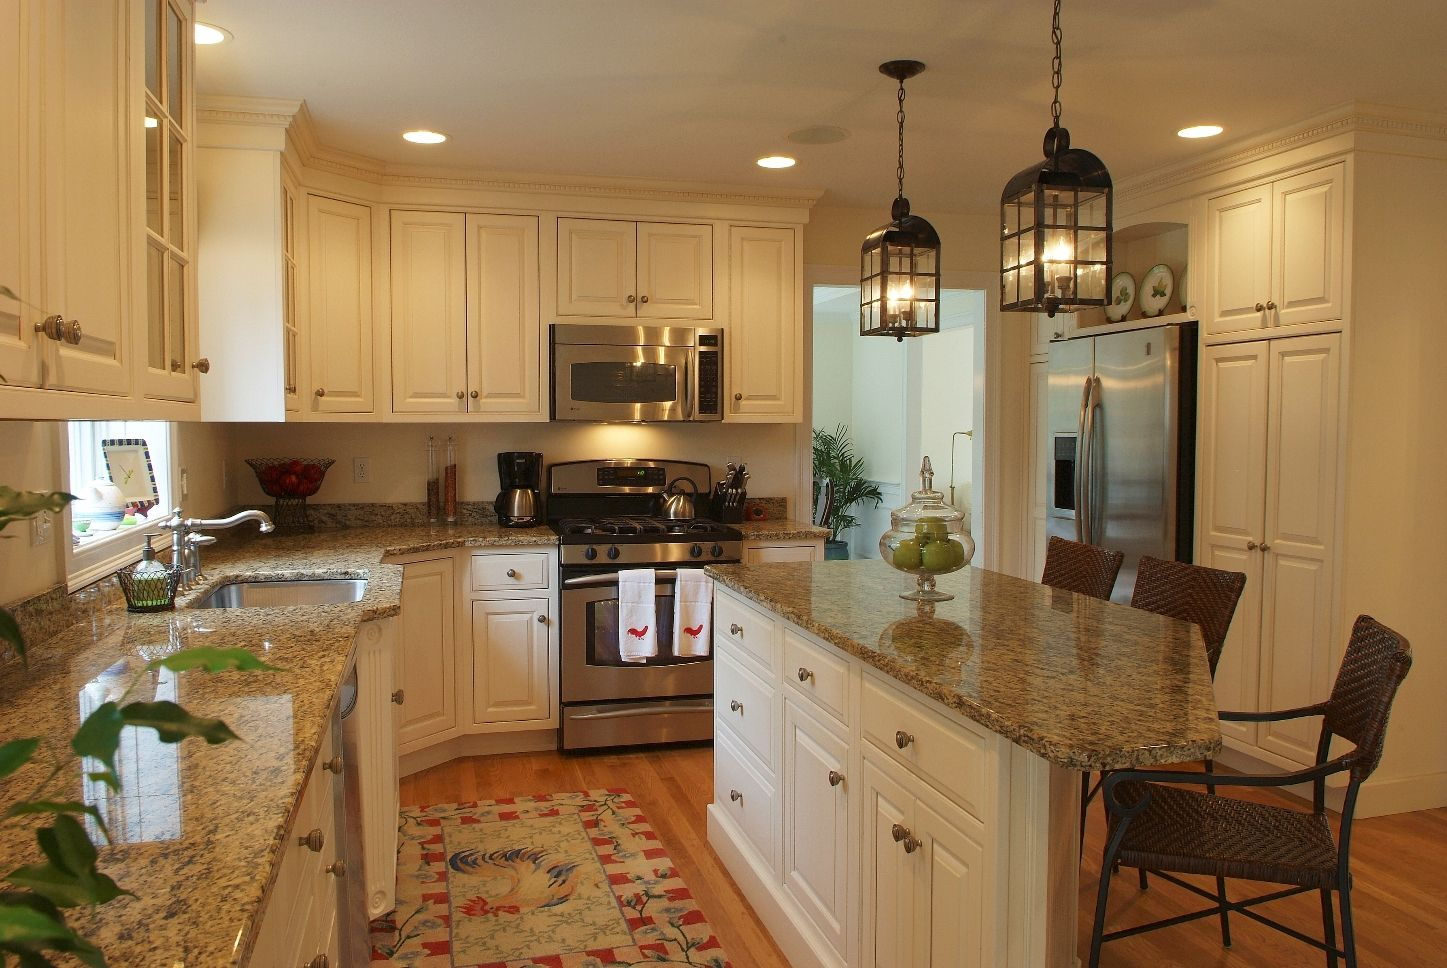 Panza Enterprises CT . Home of Designer Kitchens . Custom Cabinetry ...